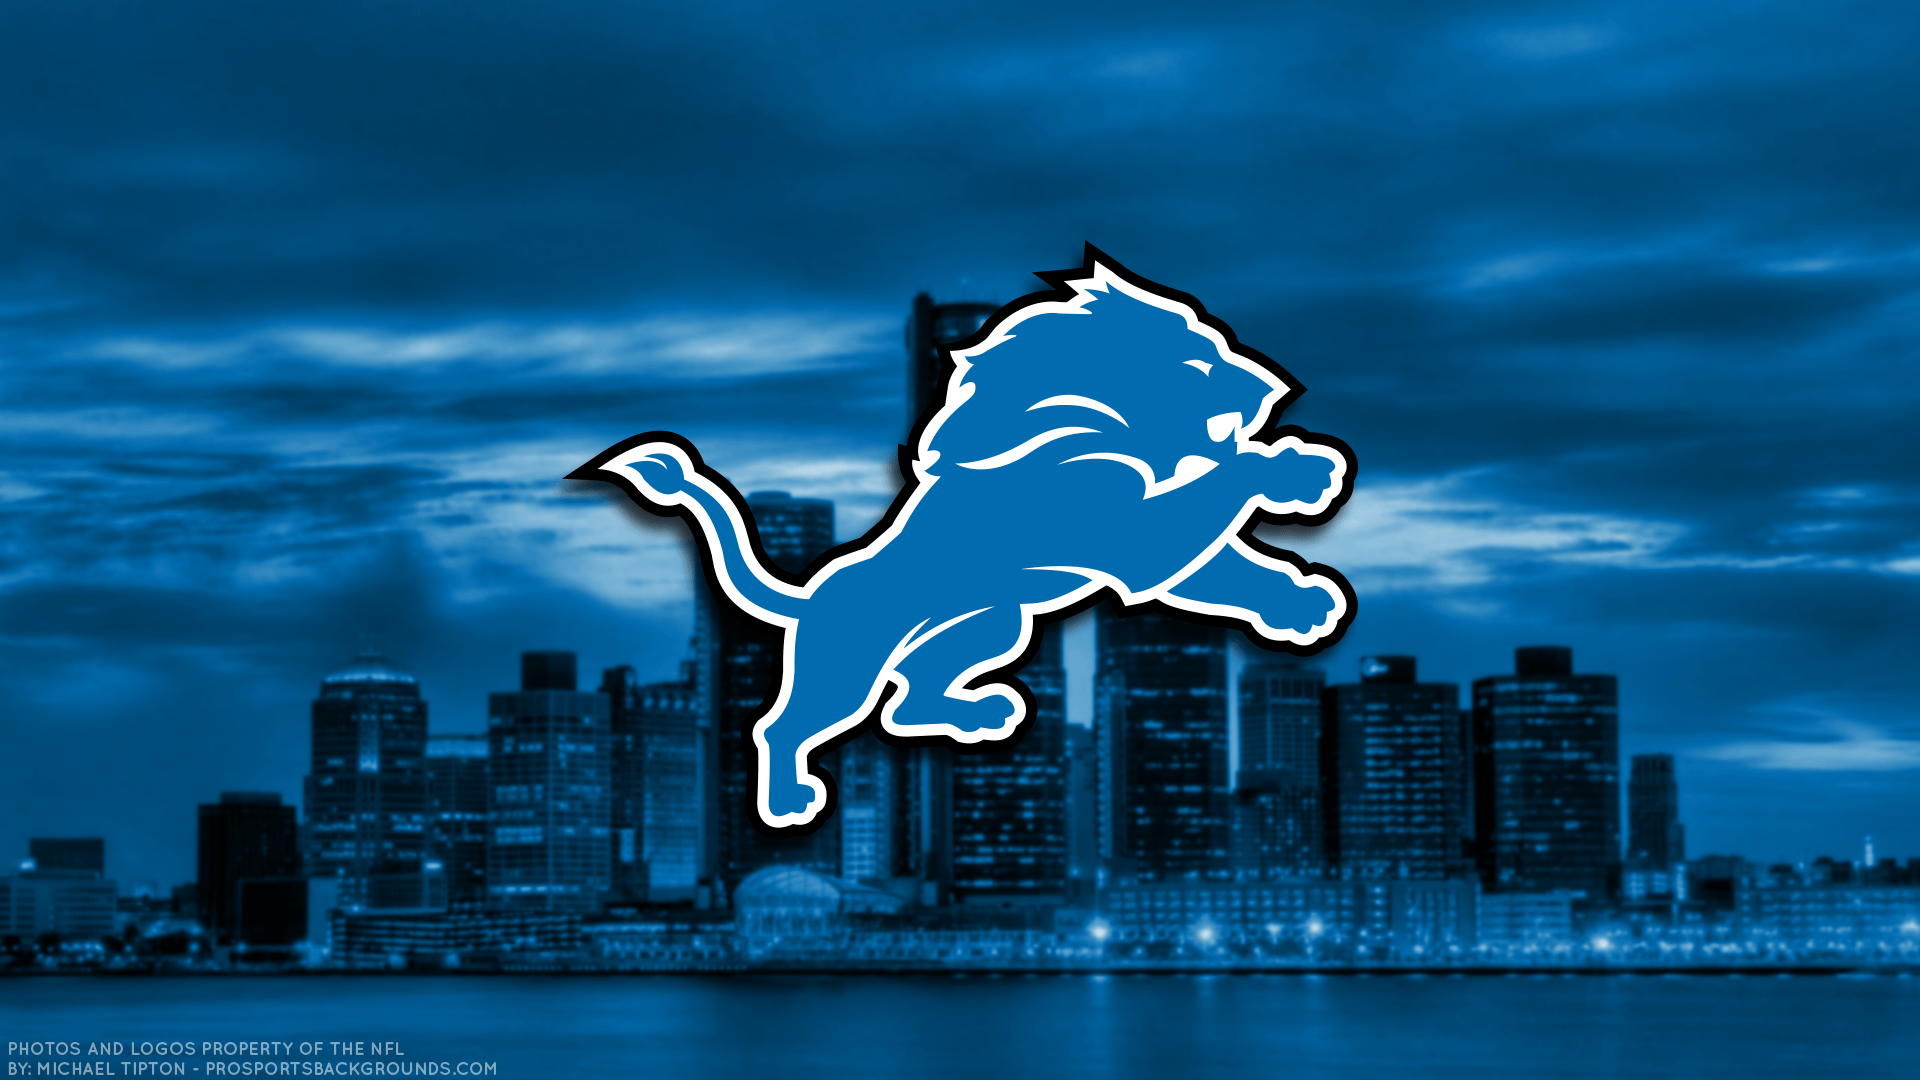 Detroit Lions Wallpapers - PC |iPhone| Android